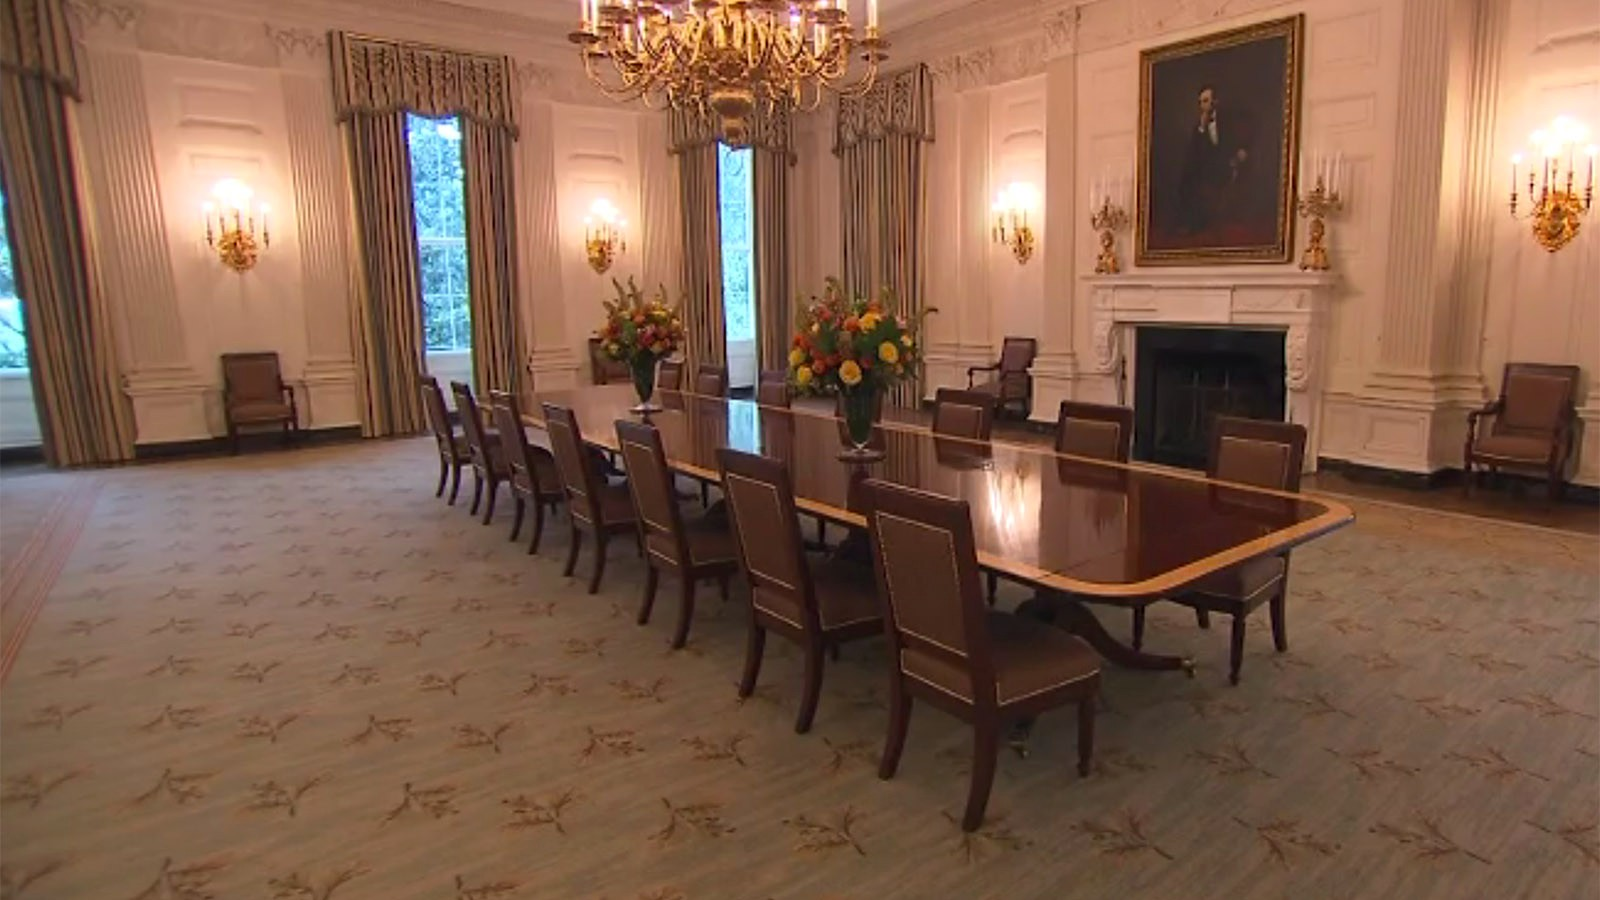 white house unveils redecorated state dining room - cnnpolitics